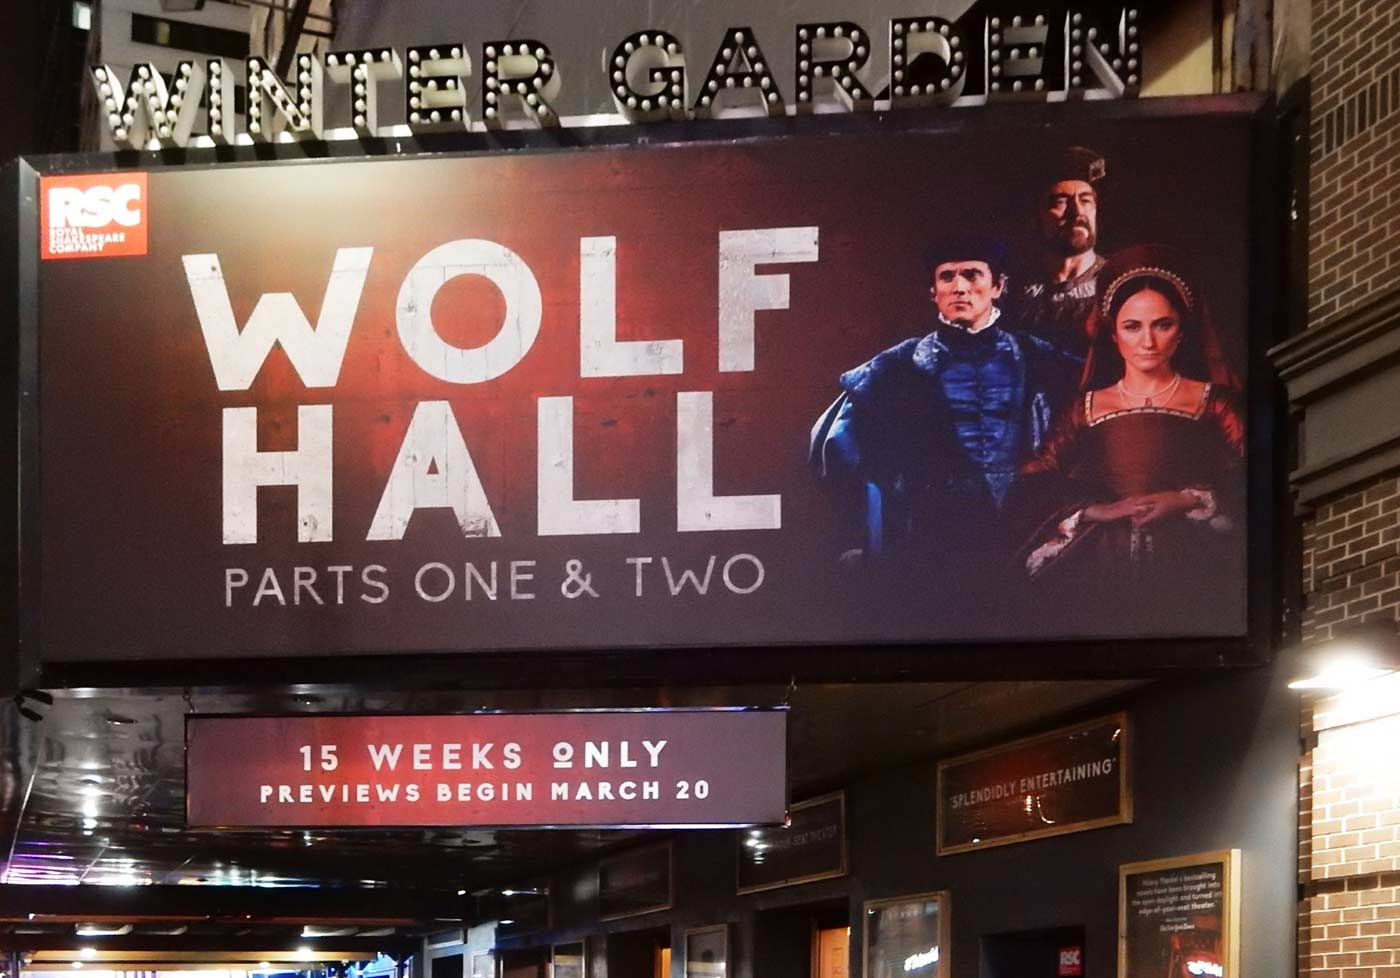 'Wolf Hall' Begins Previews March 20th